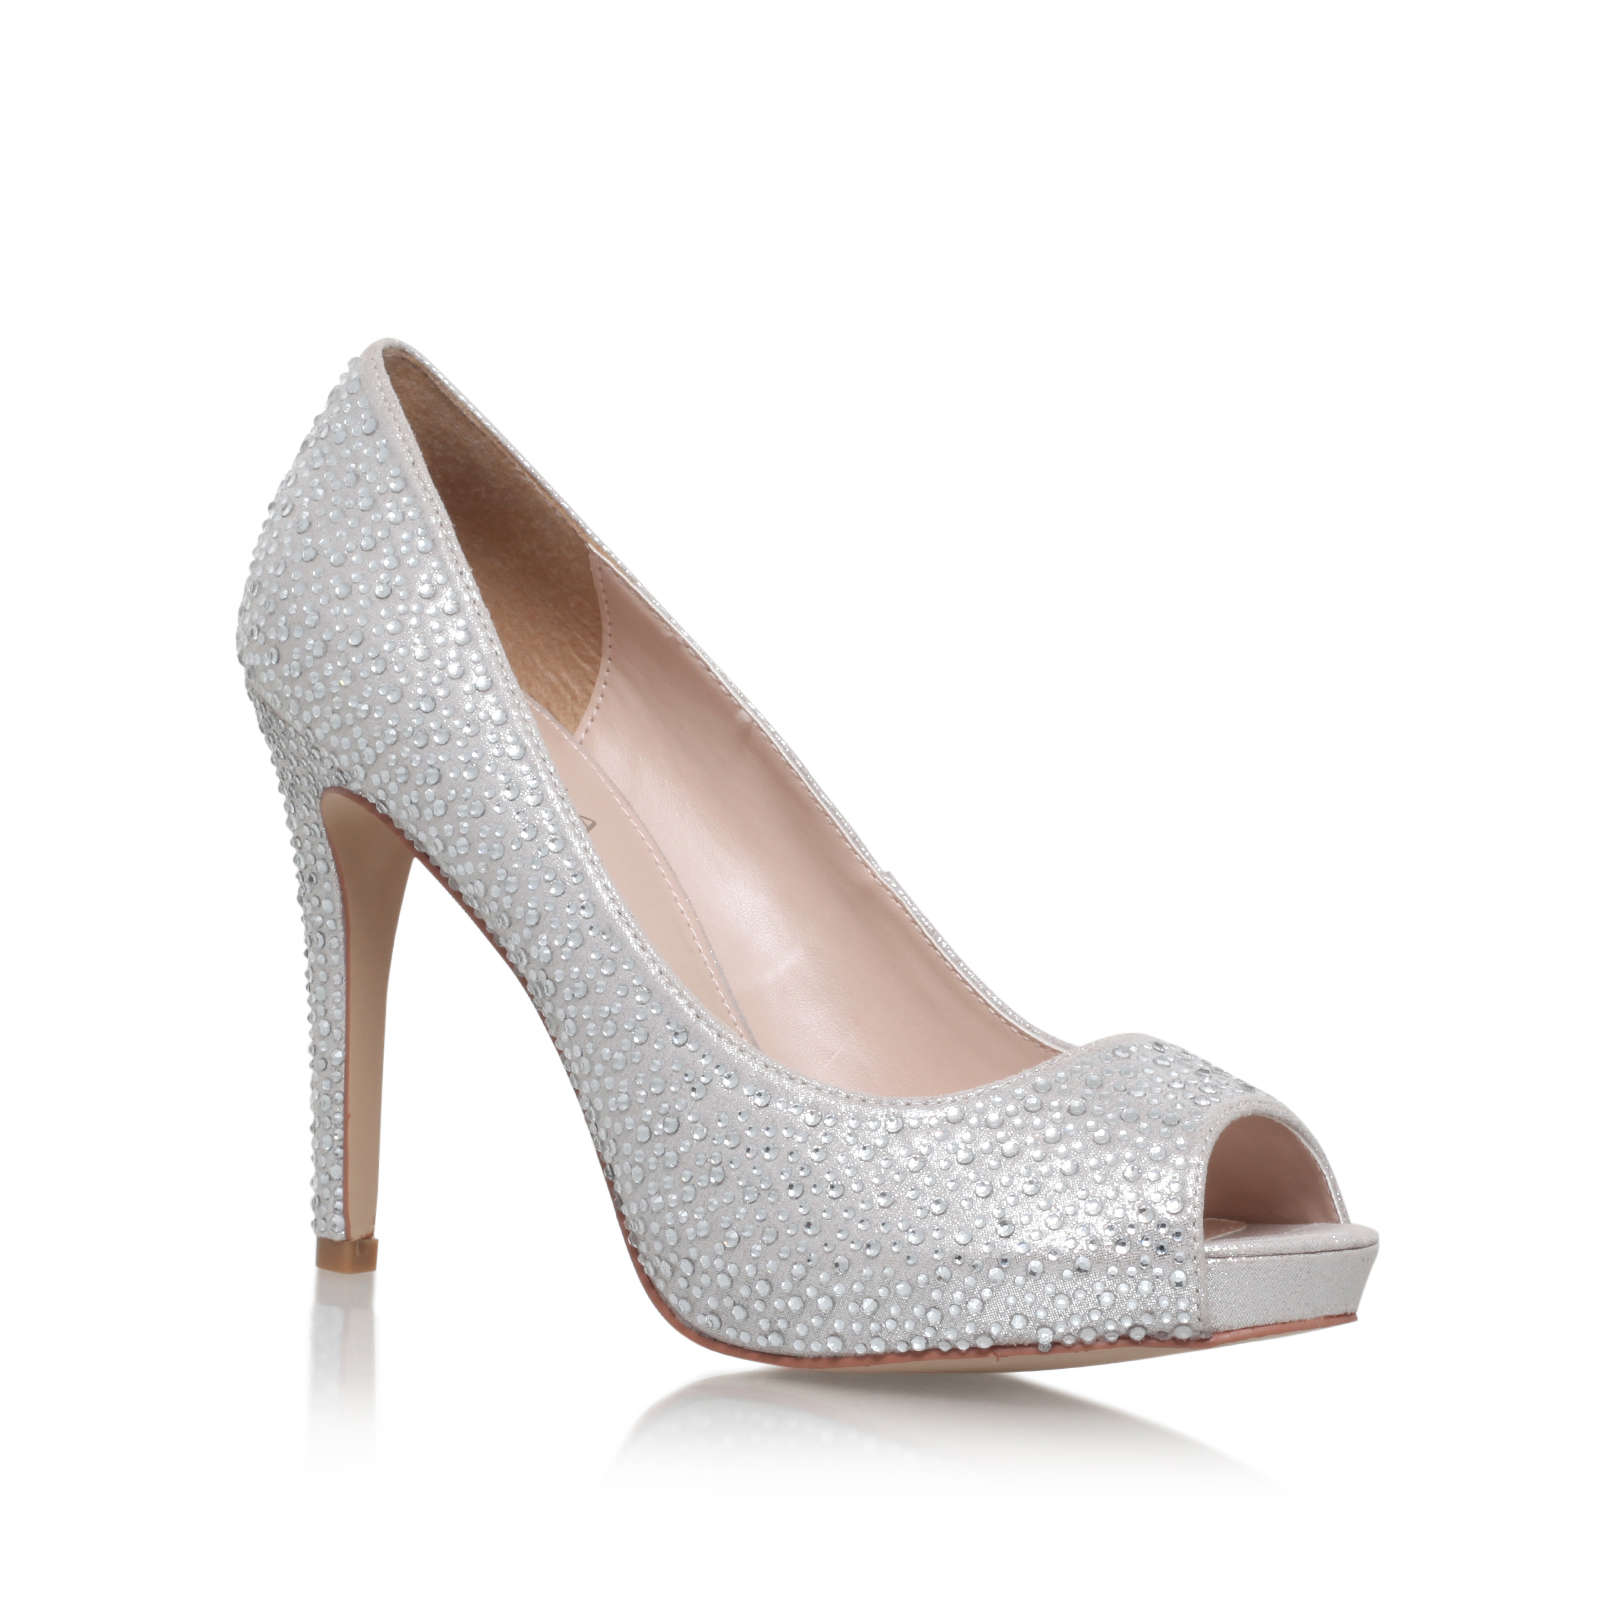 Carvela Kurt Geiger Silver Heel Peep Toe Shoes